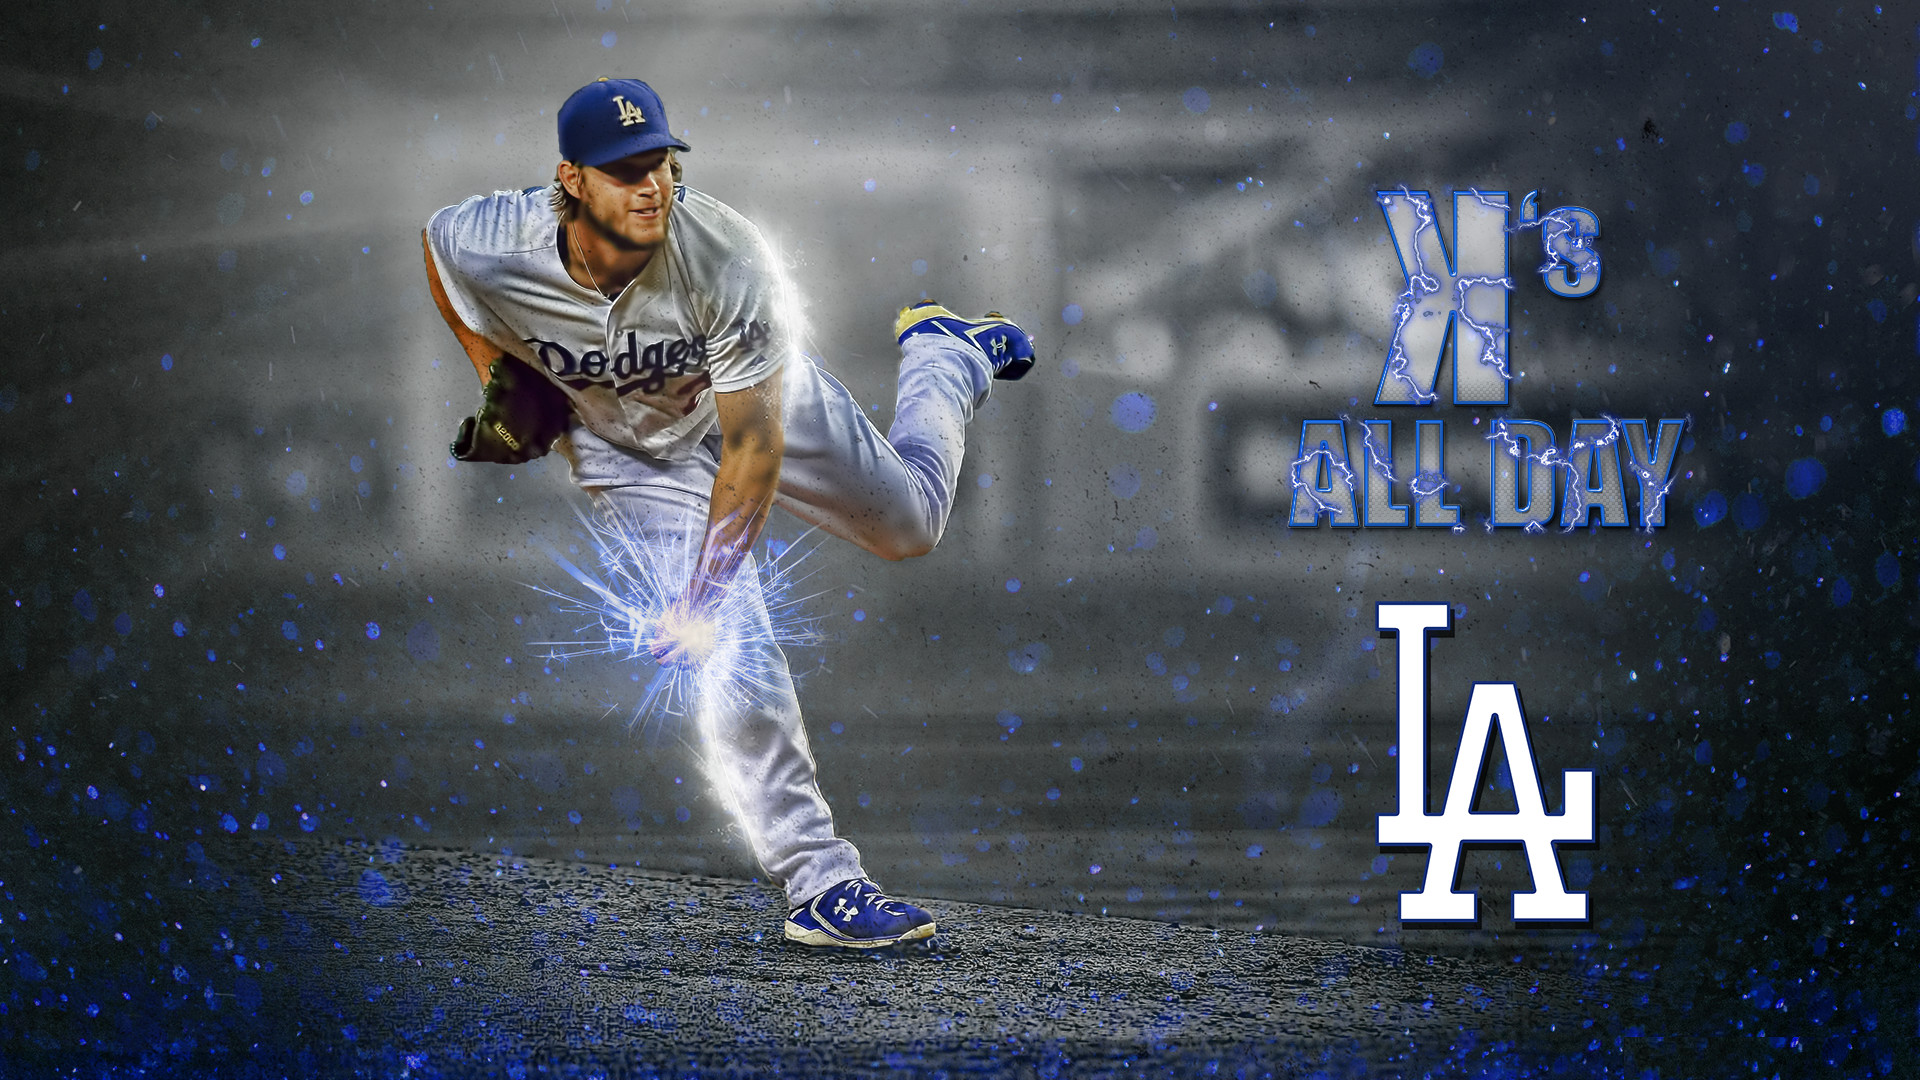 Dodgers Wallpaper 58 Pictures